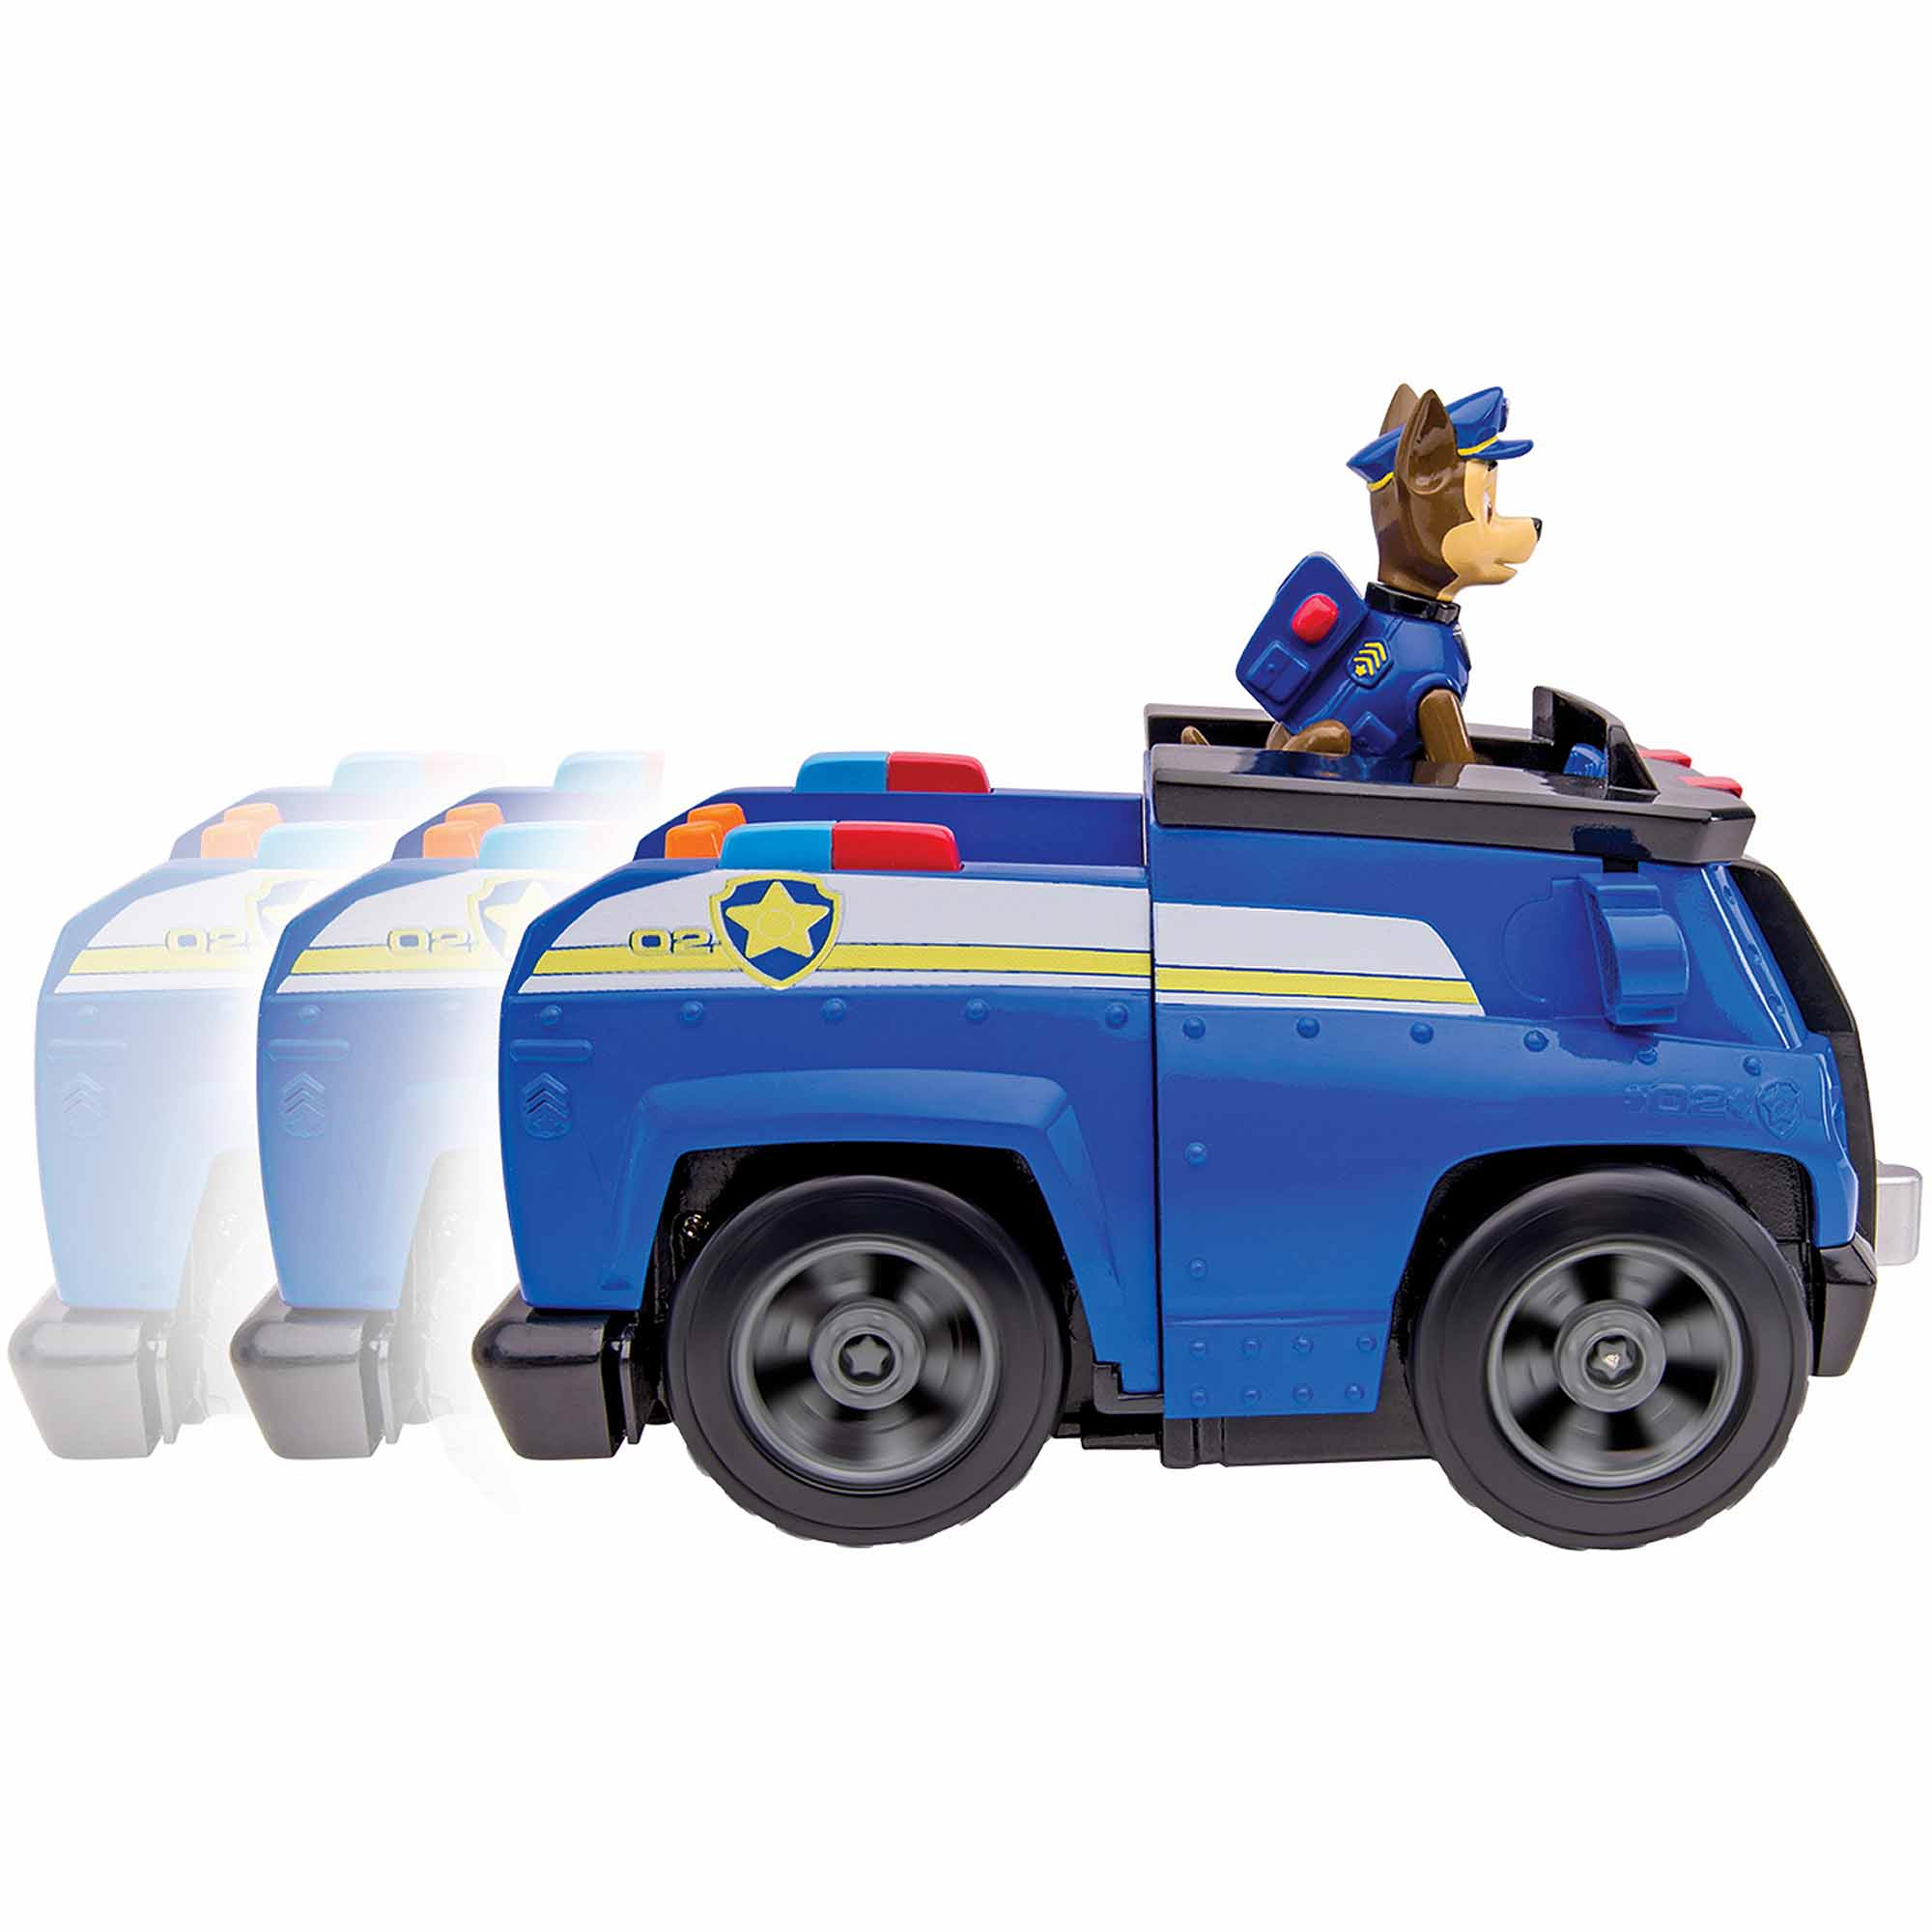 Nickelodeon Paw Patrol - Chase's Deluxe Cruiser, Figure with Vehicle with Sounds